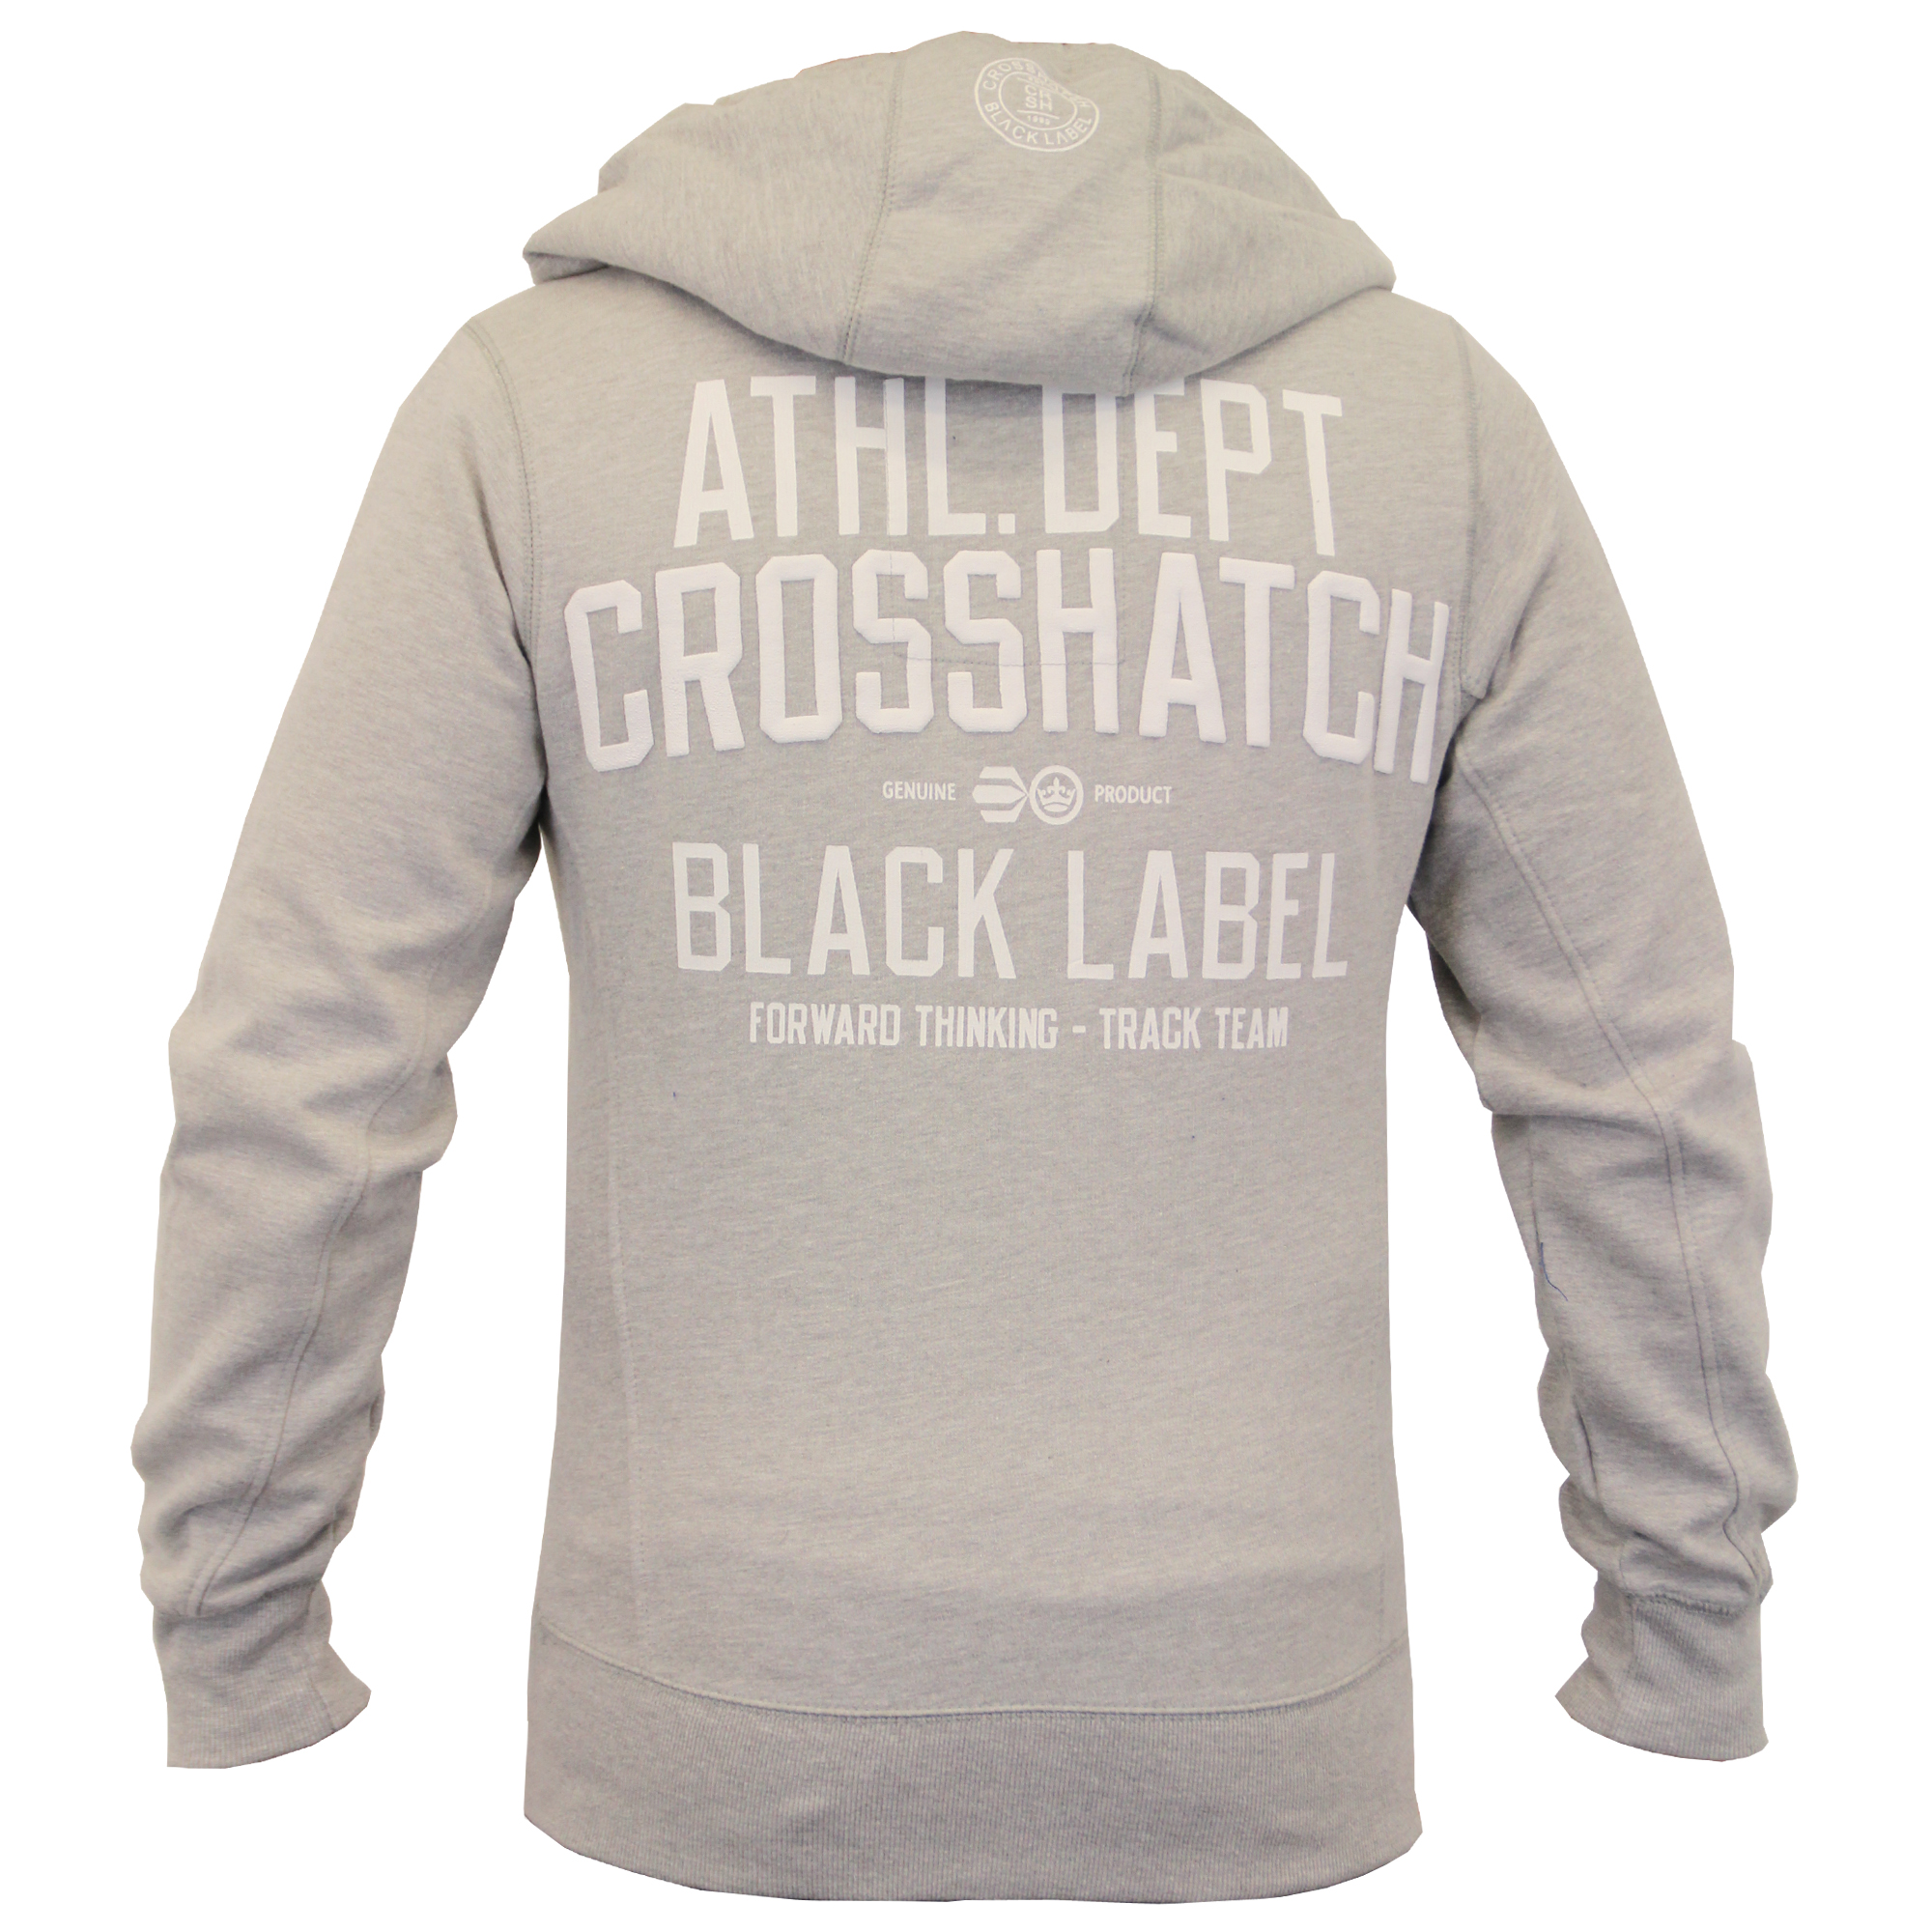 Mens-Hooded-Fleece-Lined-Top-Sweatshirt-By-Crosshatch thumbnail 3